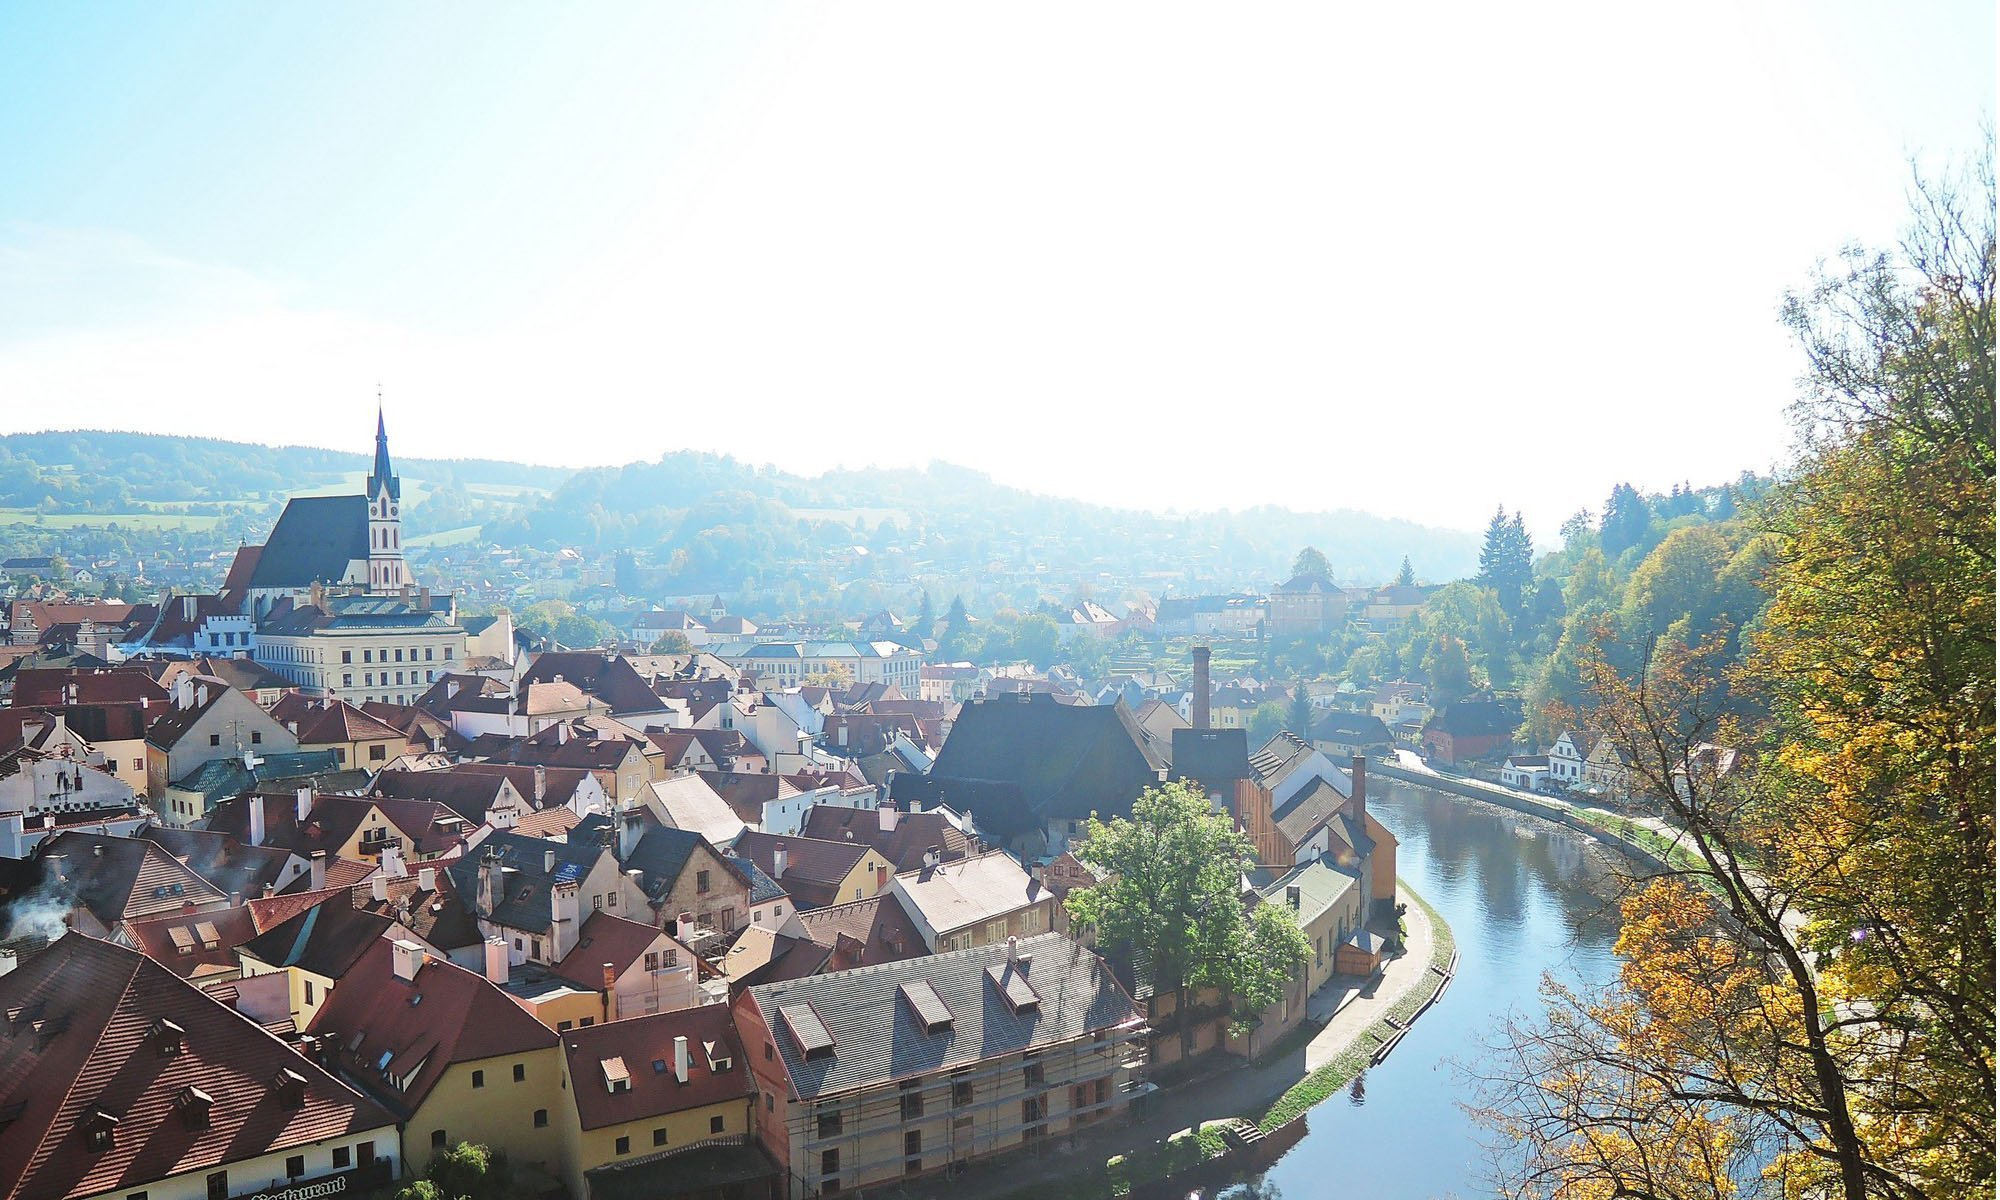 Perfect weather at Cesky Krumlov, Czech Republic